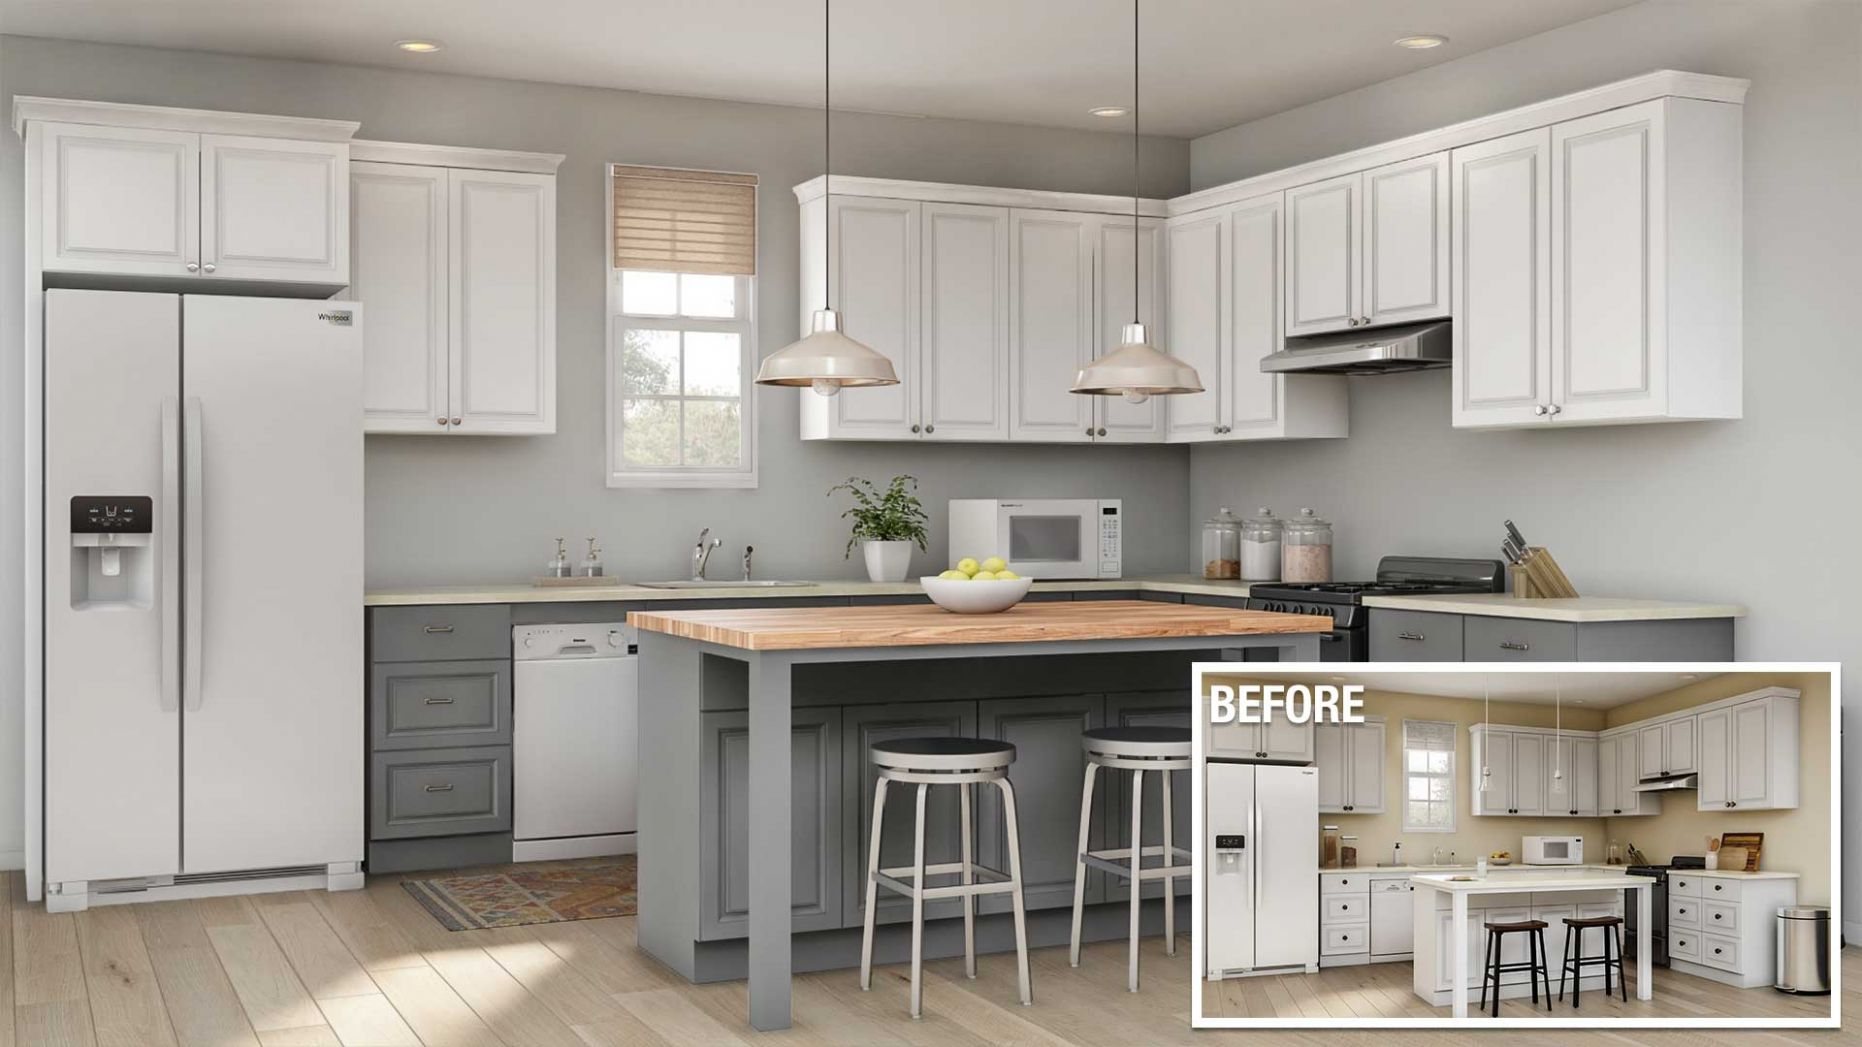 Cost to Remodel a Kitchen - The Home Depot - kitchen ideas and costs